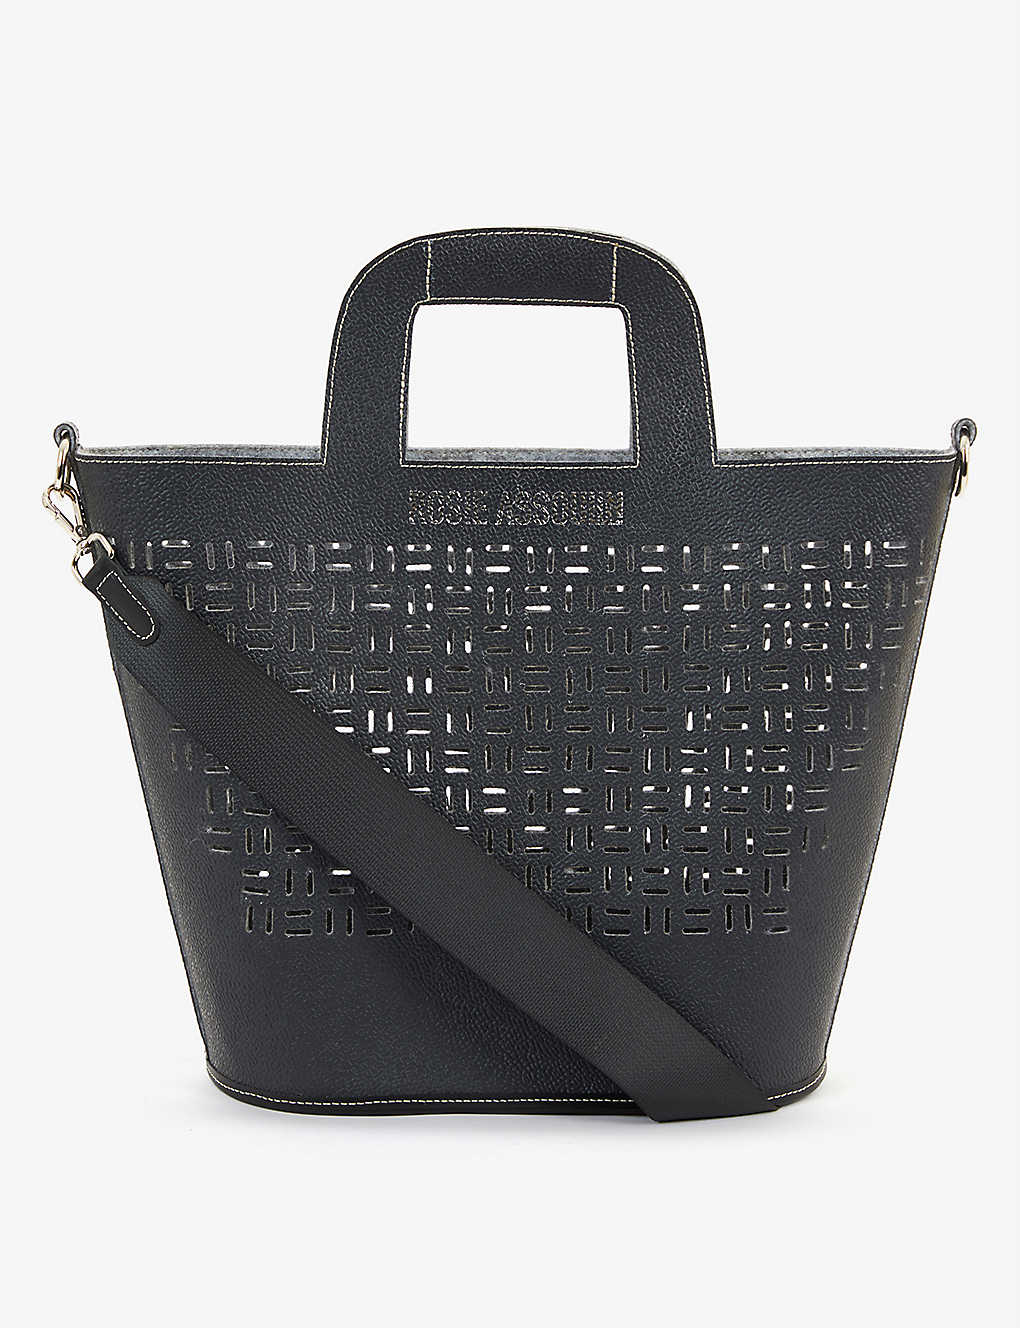 Rosie Assoulin | Woven Tote Bag